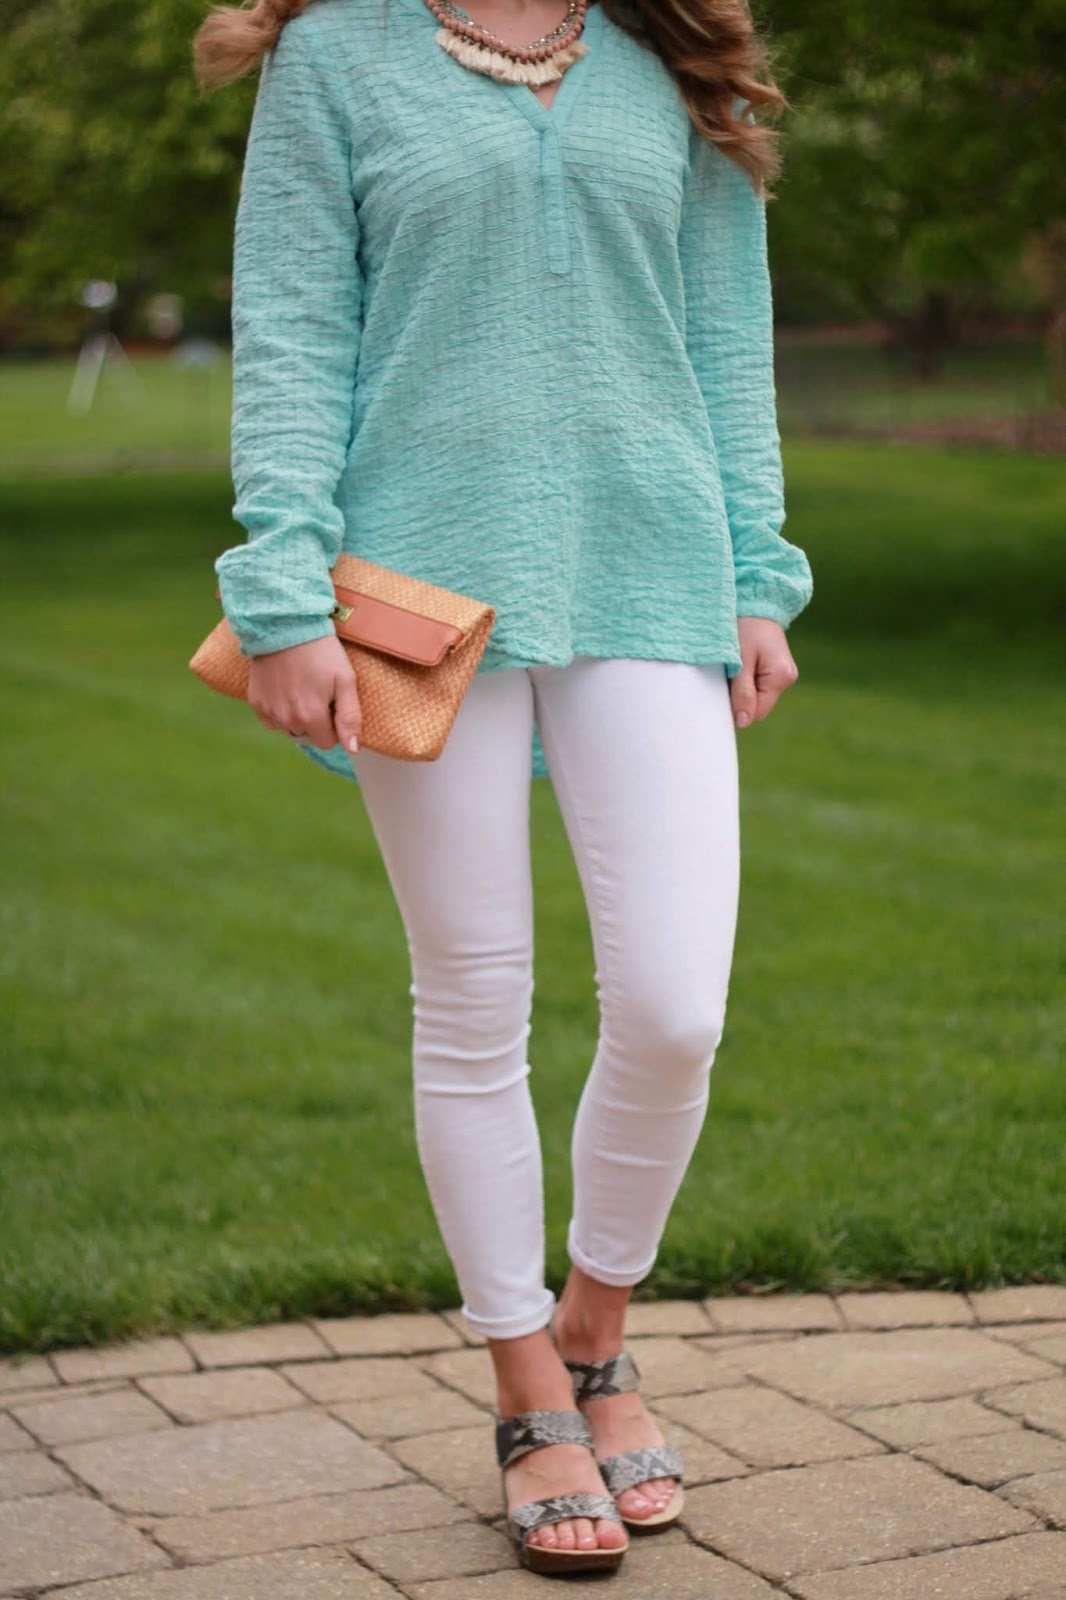 aventura mint tunic, white denim, ABEO snakeskin wedges, straw clutch, lightweight spring outfit